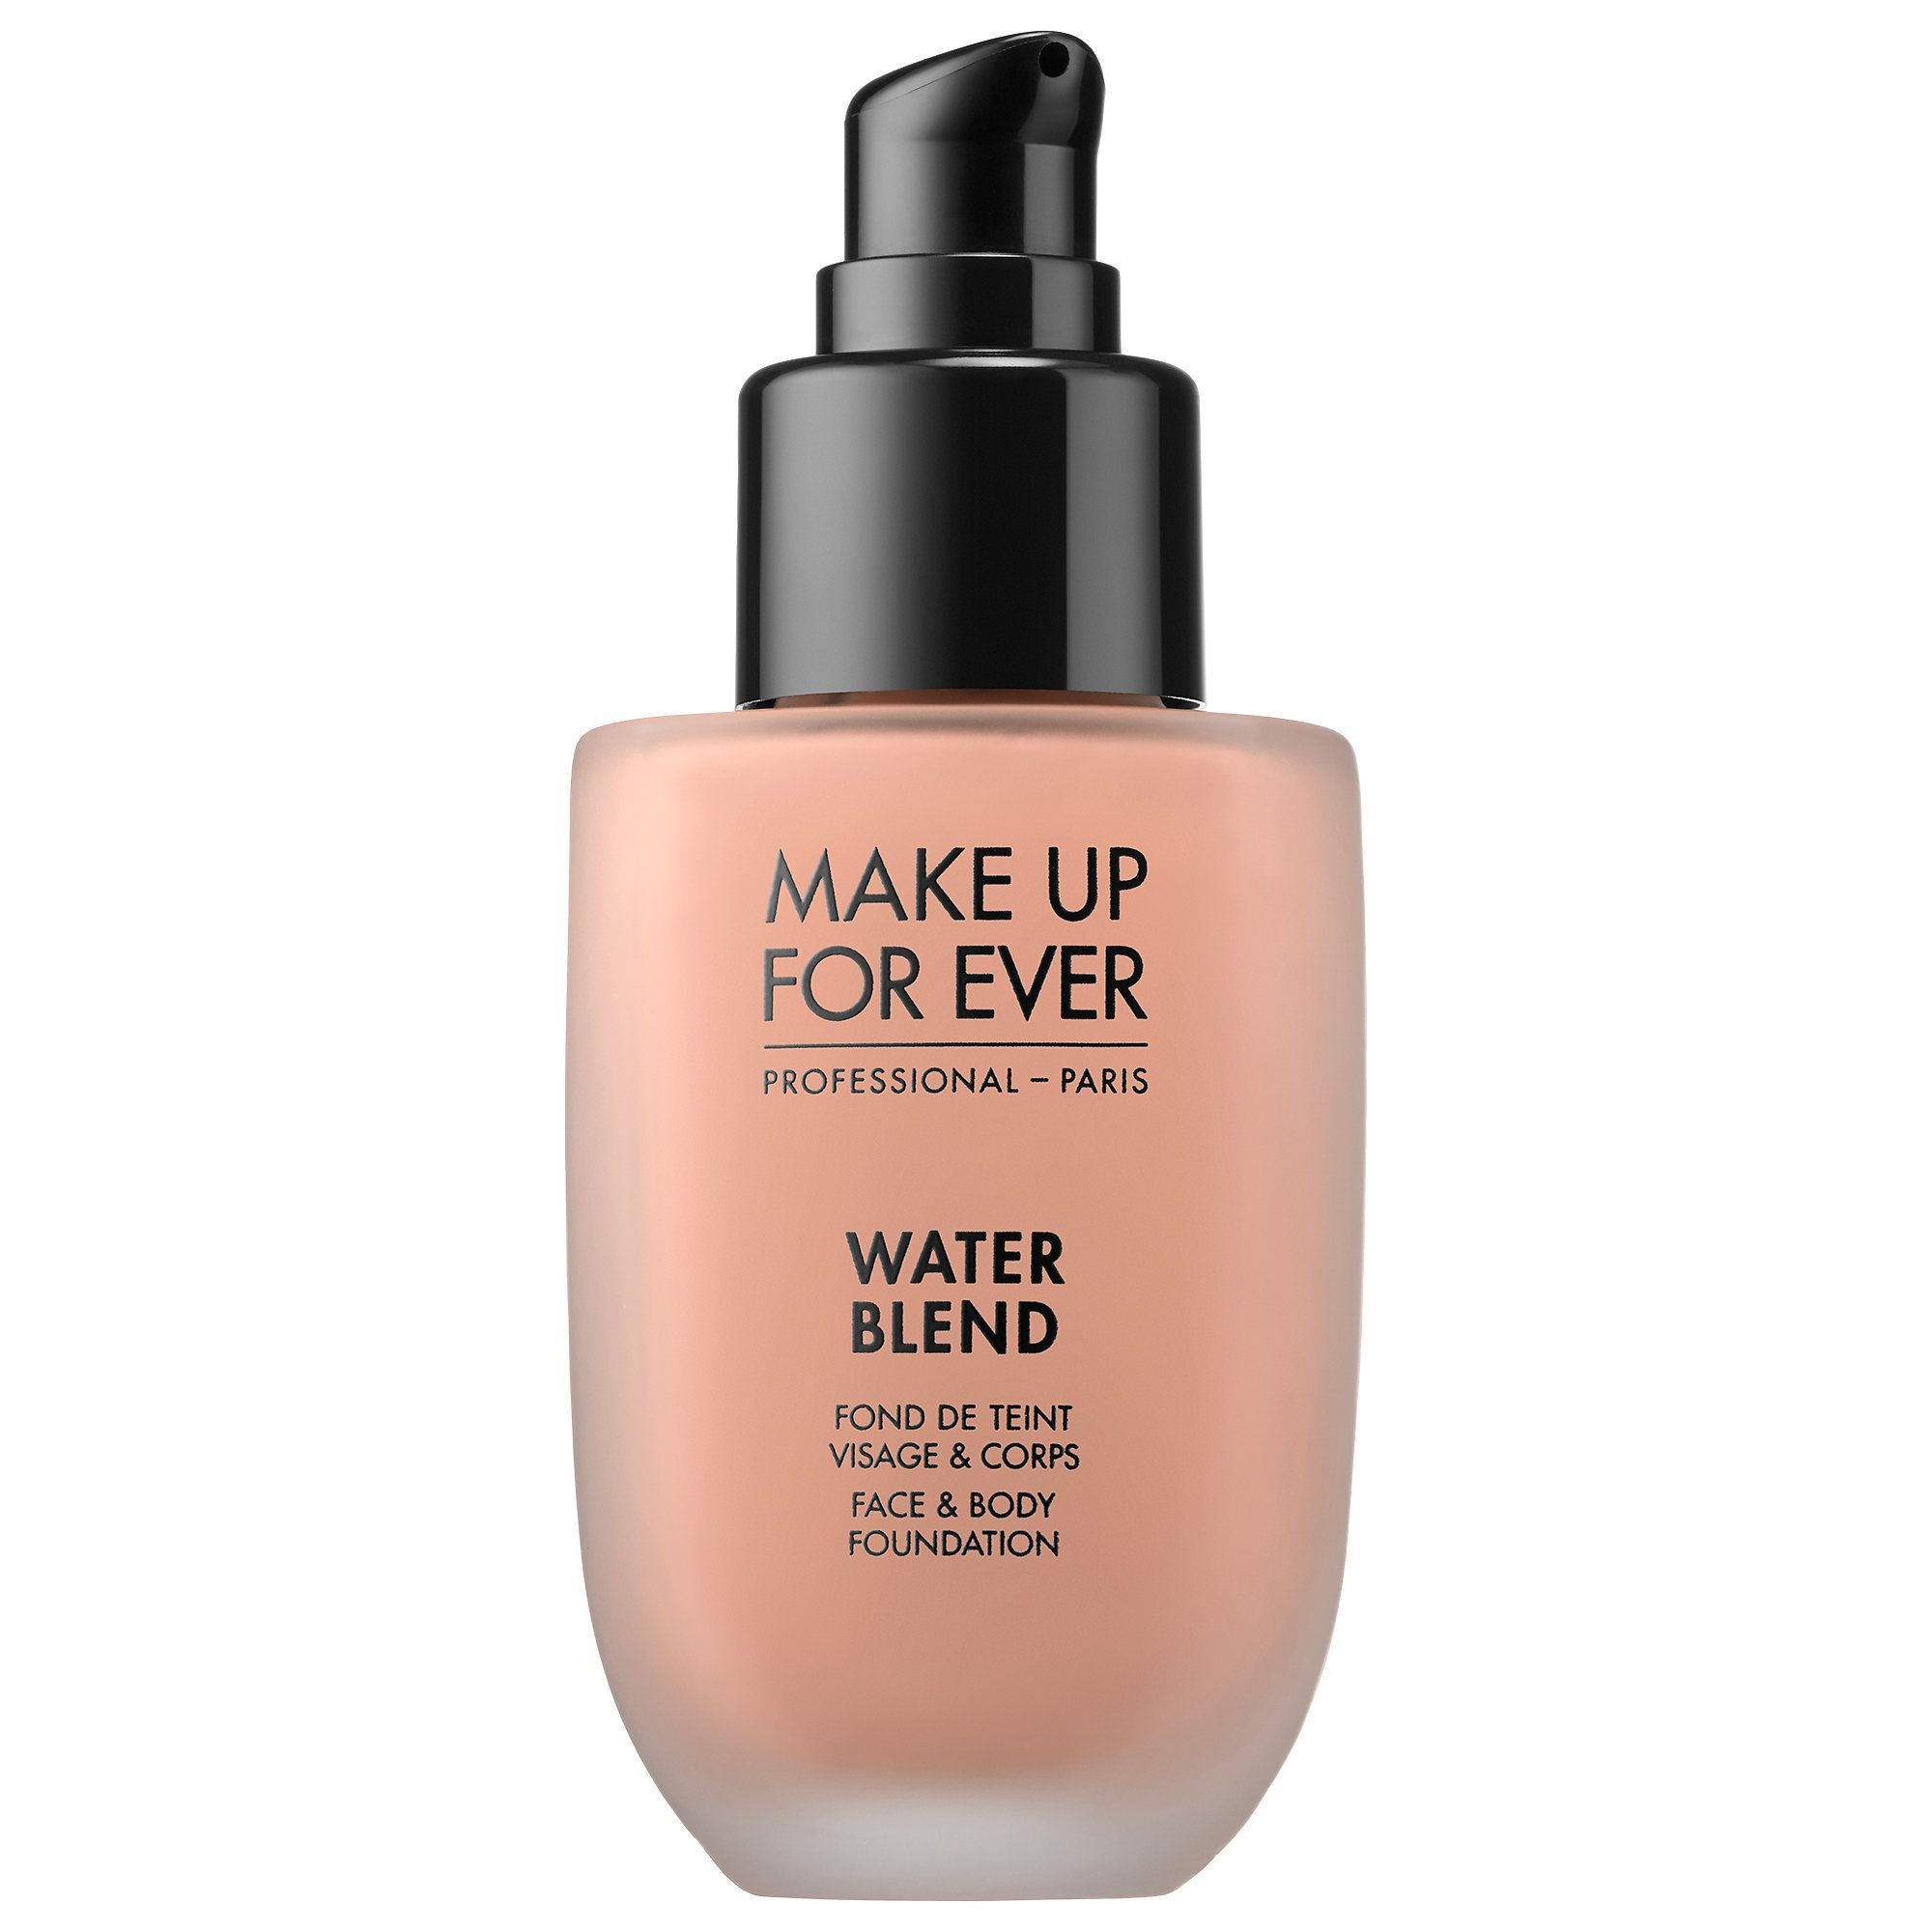 Water Blend Face & Body Foundation Maquillaje, S. a